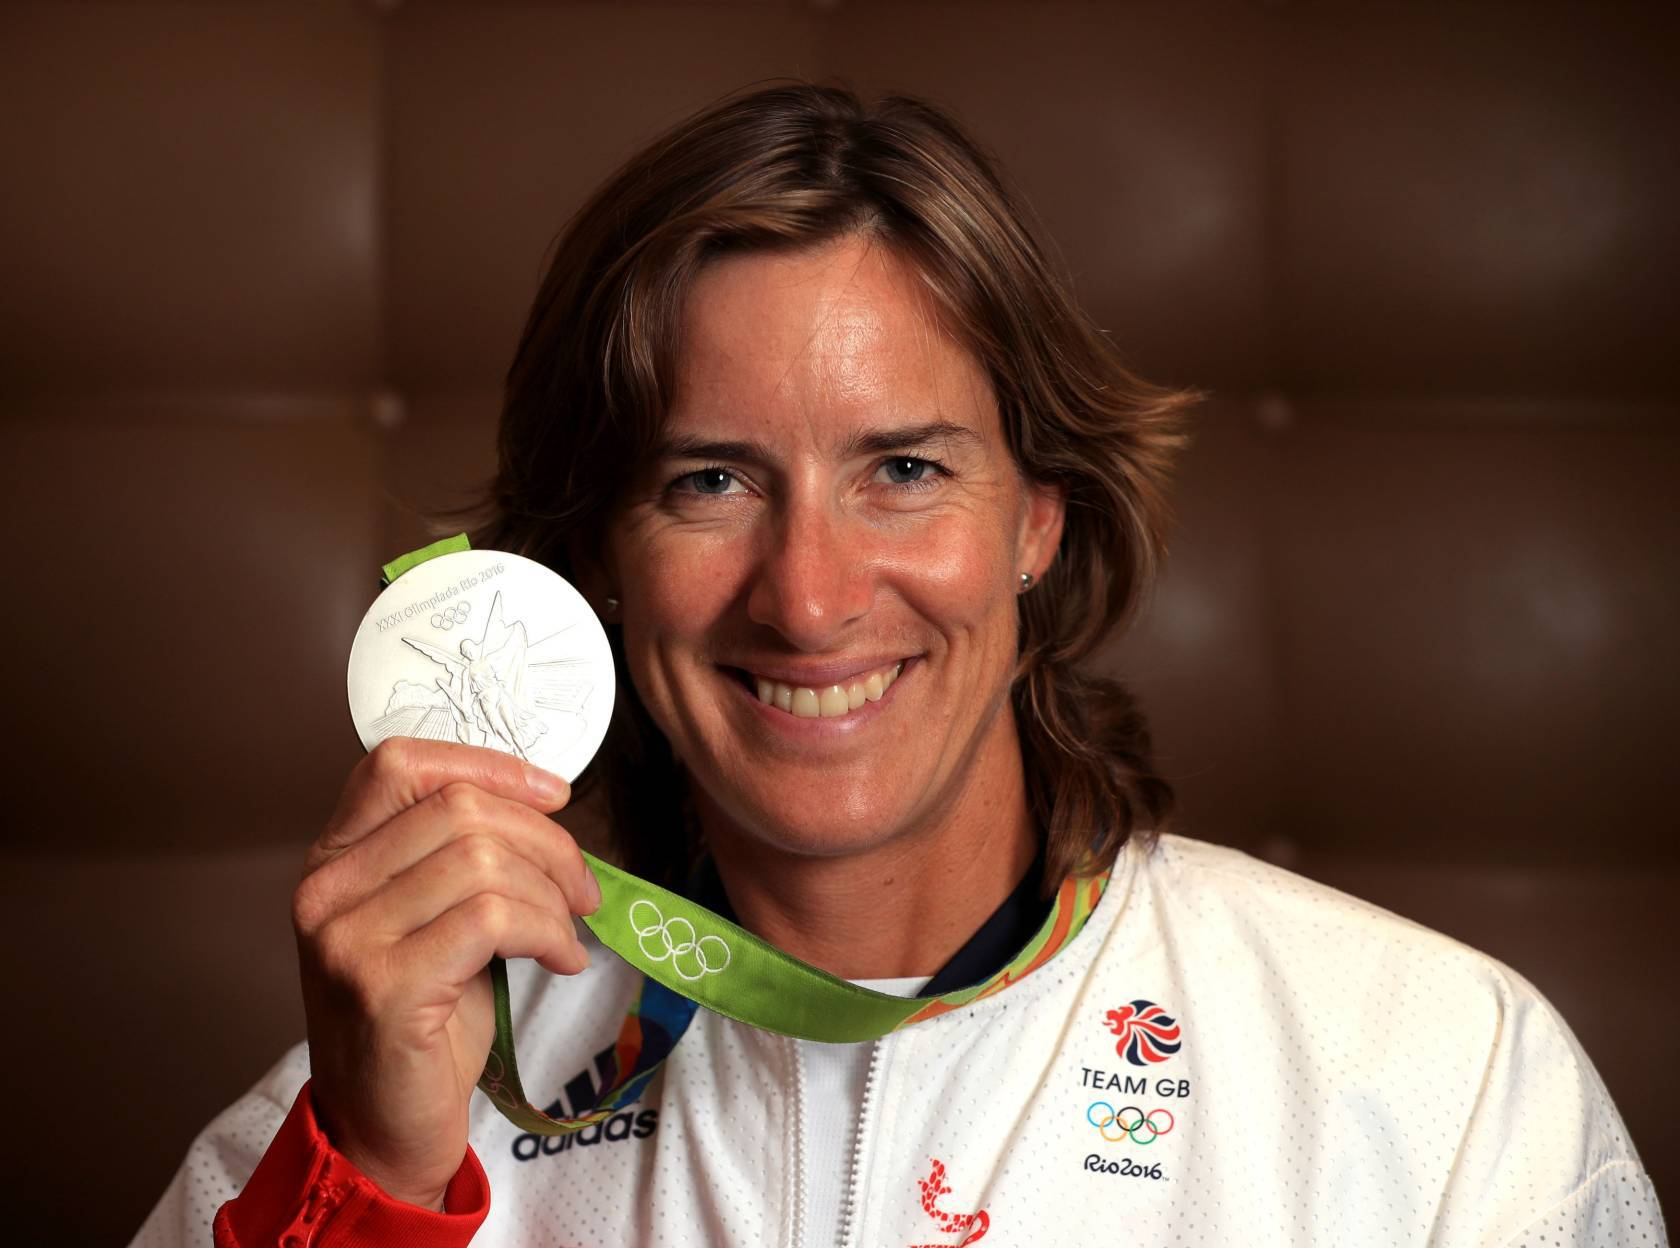 Great Britain's Katherine Grainger poses with her silver medal after a press conference at the Sofitel Hotel, Heathrow Airport. PRESS ASSOCIATION Photo. Picture date: Tuesday August 23, 2016. Team GB arrive back in the UK after finishing second in Rio 2016 Olympic medal table, surpassing their London 2012 medal haul. Photo credit should read: John Walton/PA Wire